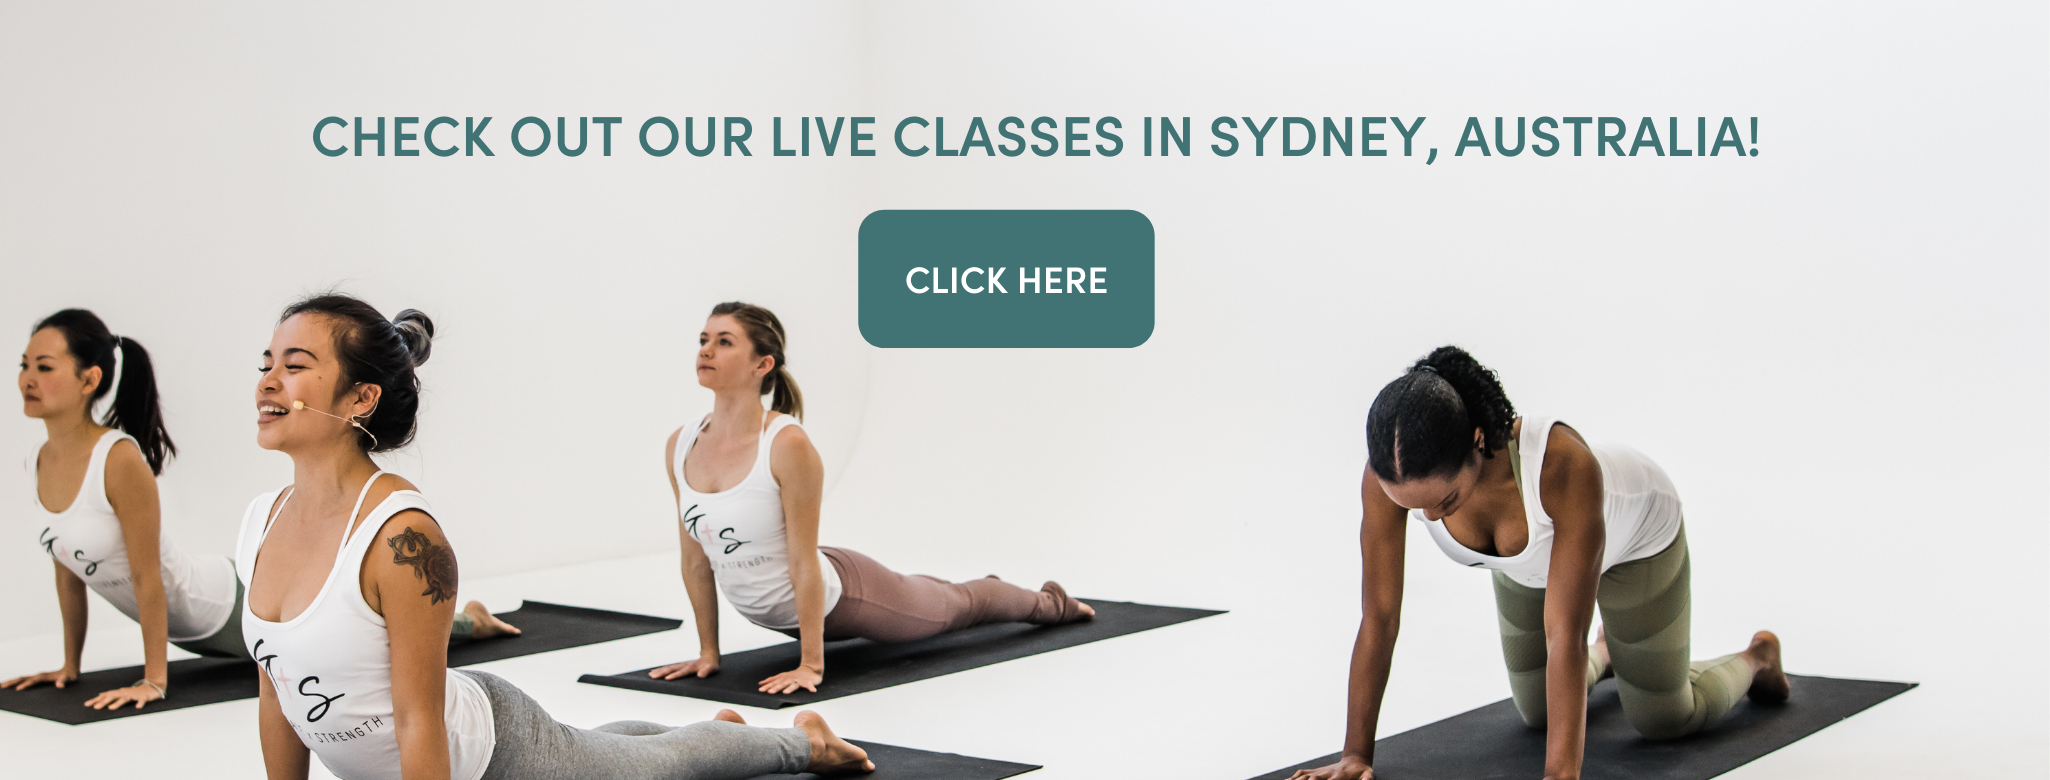 For all Grace x Strength live classes